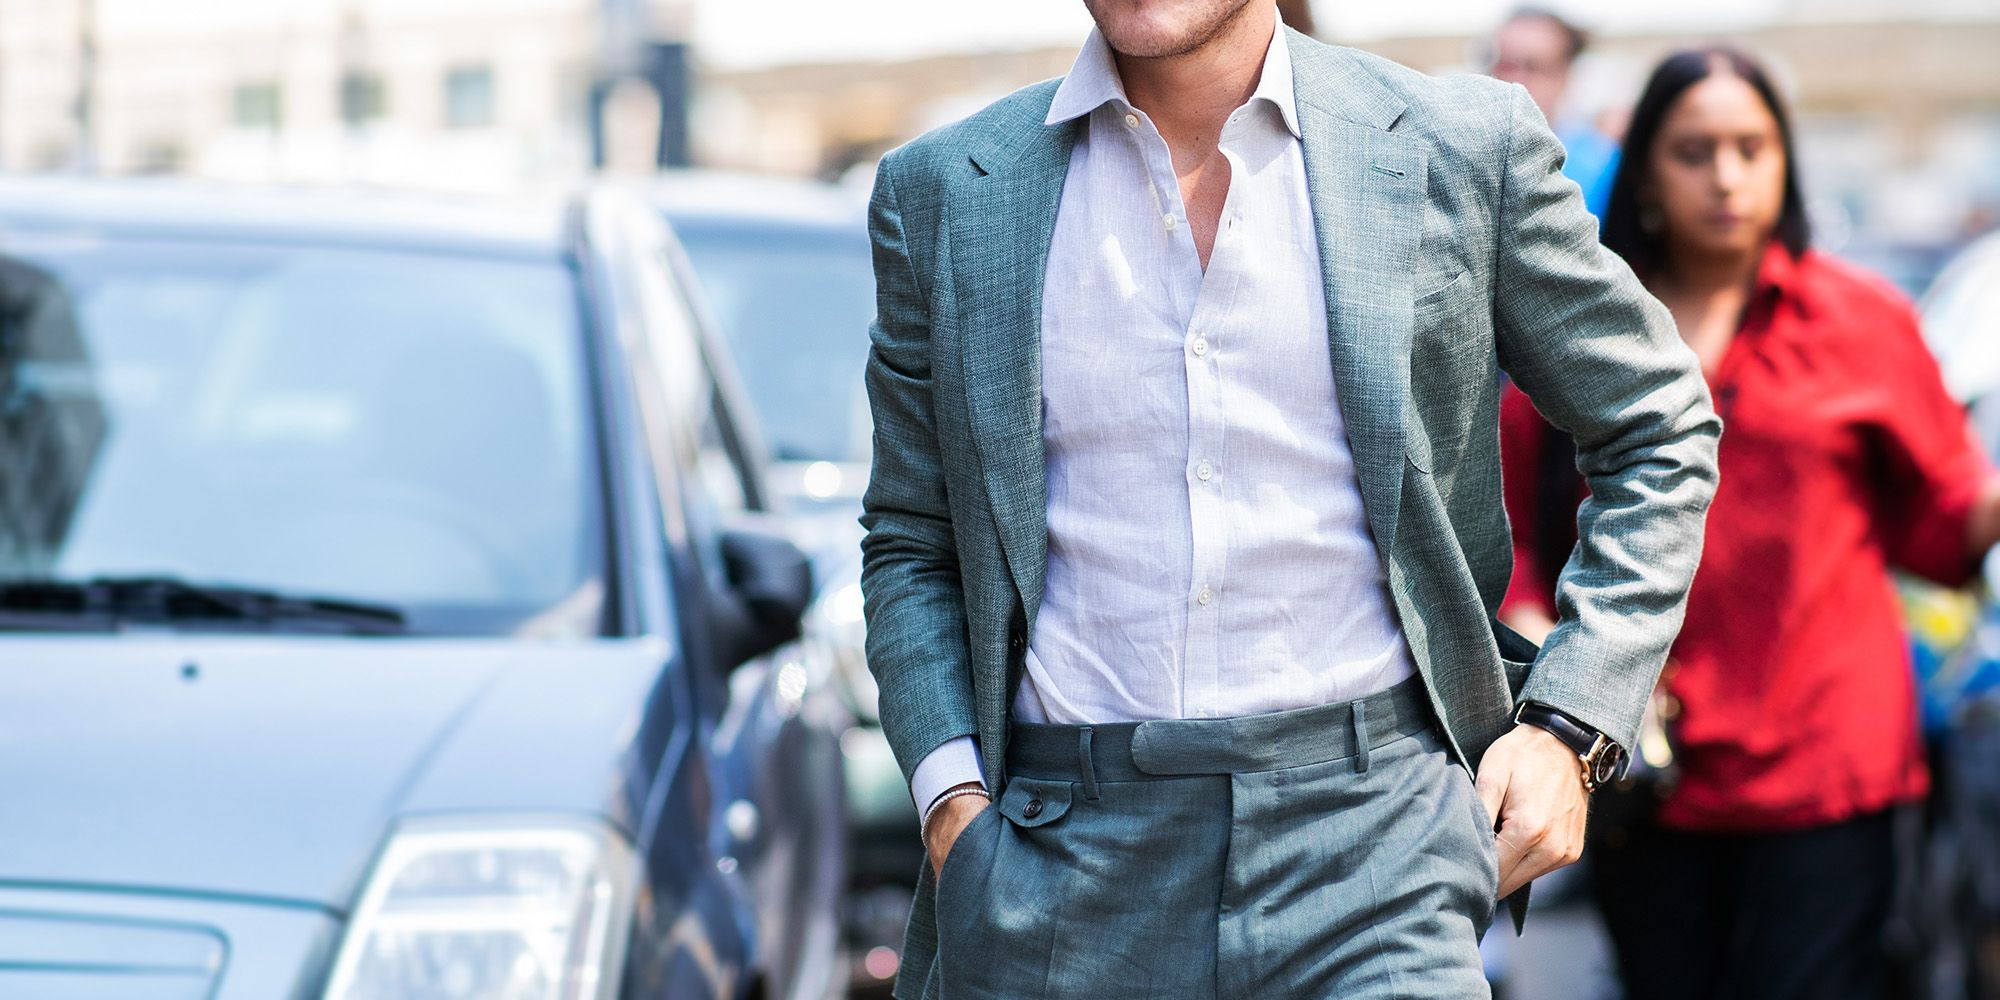 10 Lightweight Suits to Keep You Cool This Summer